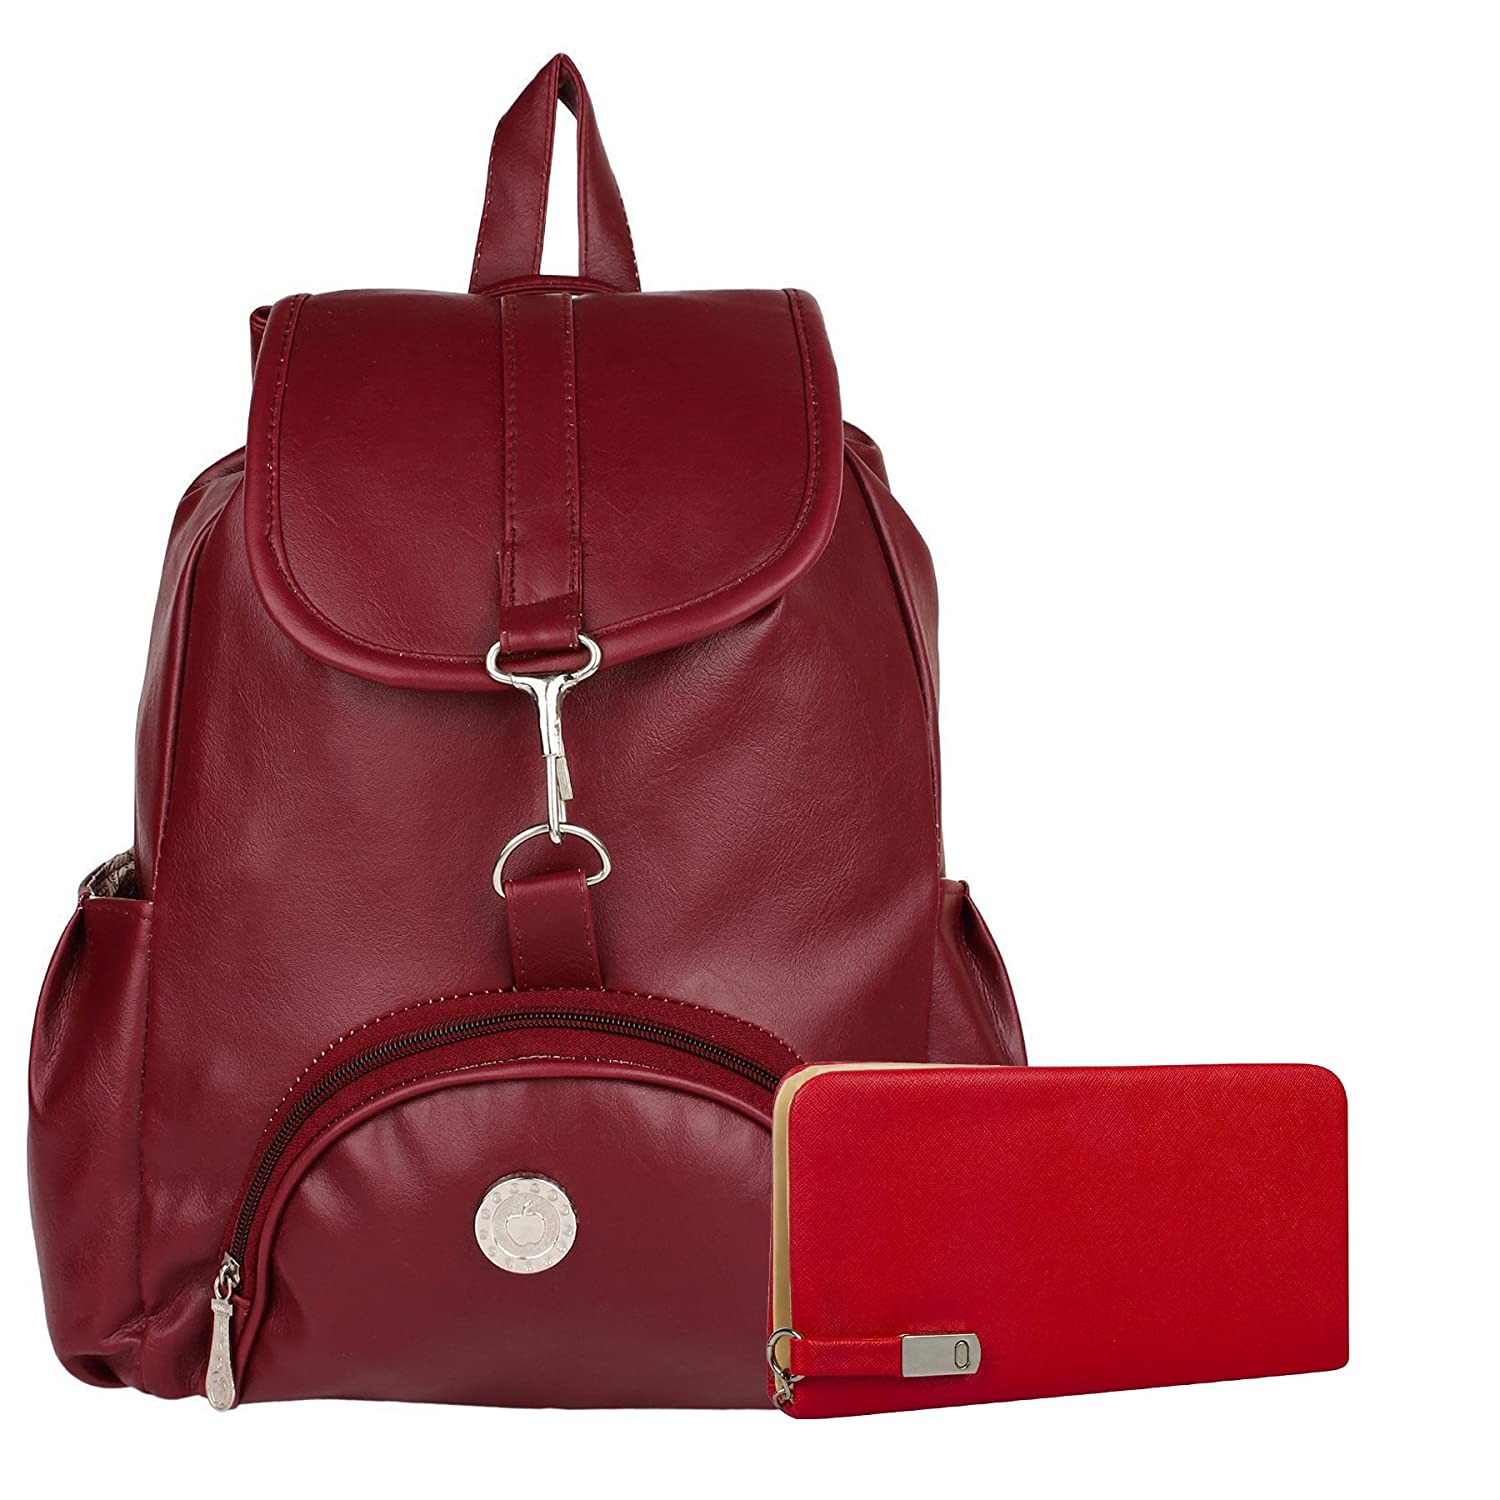 0c524fbcd Buy Alice Women's and girls Stylish Handbag Backpack and Wallet Clutch  Combo(Apple maroon) Online at Low Prices in India - Amazon.in